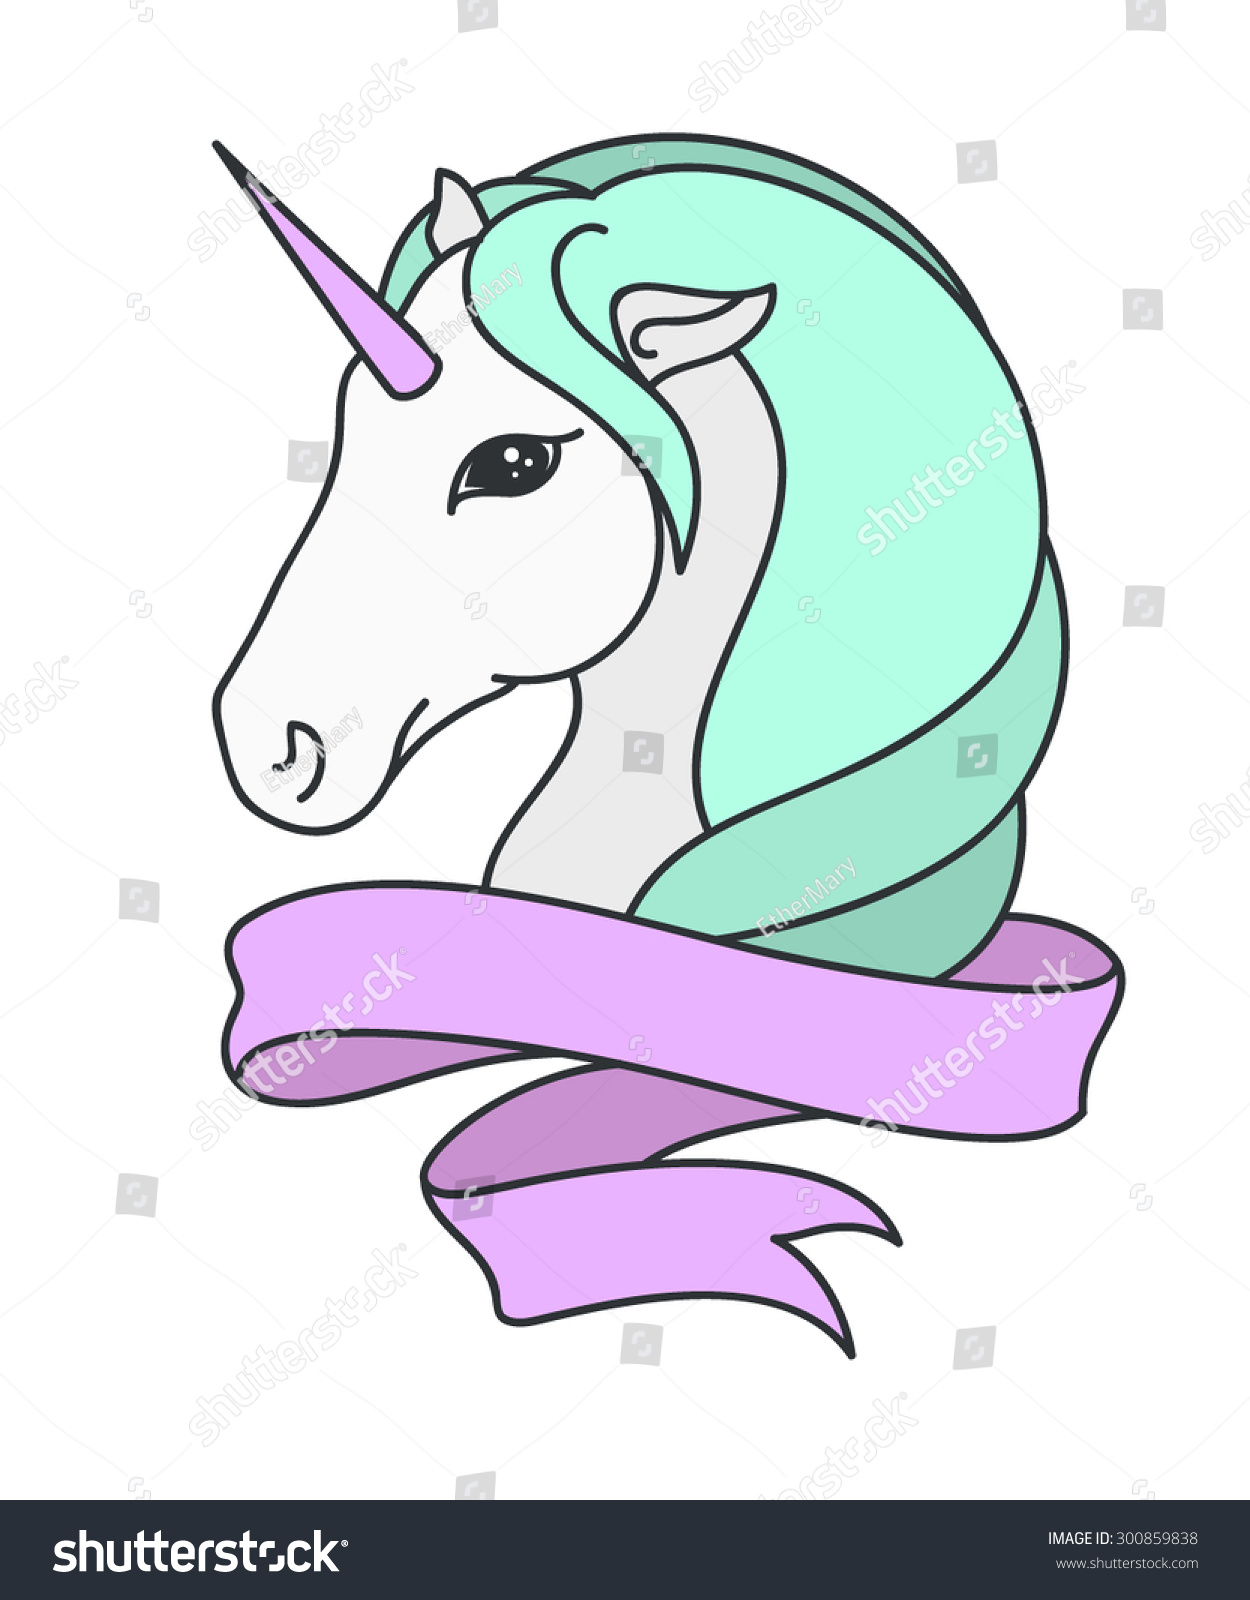 unicorn head illustration